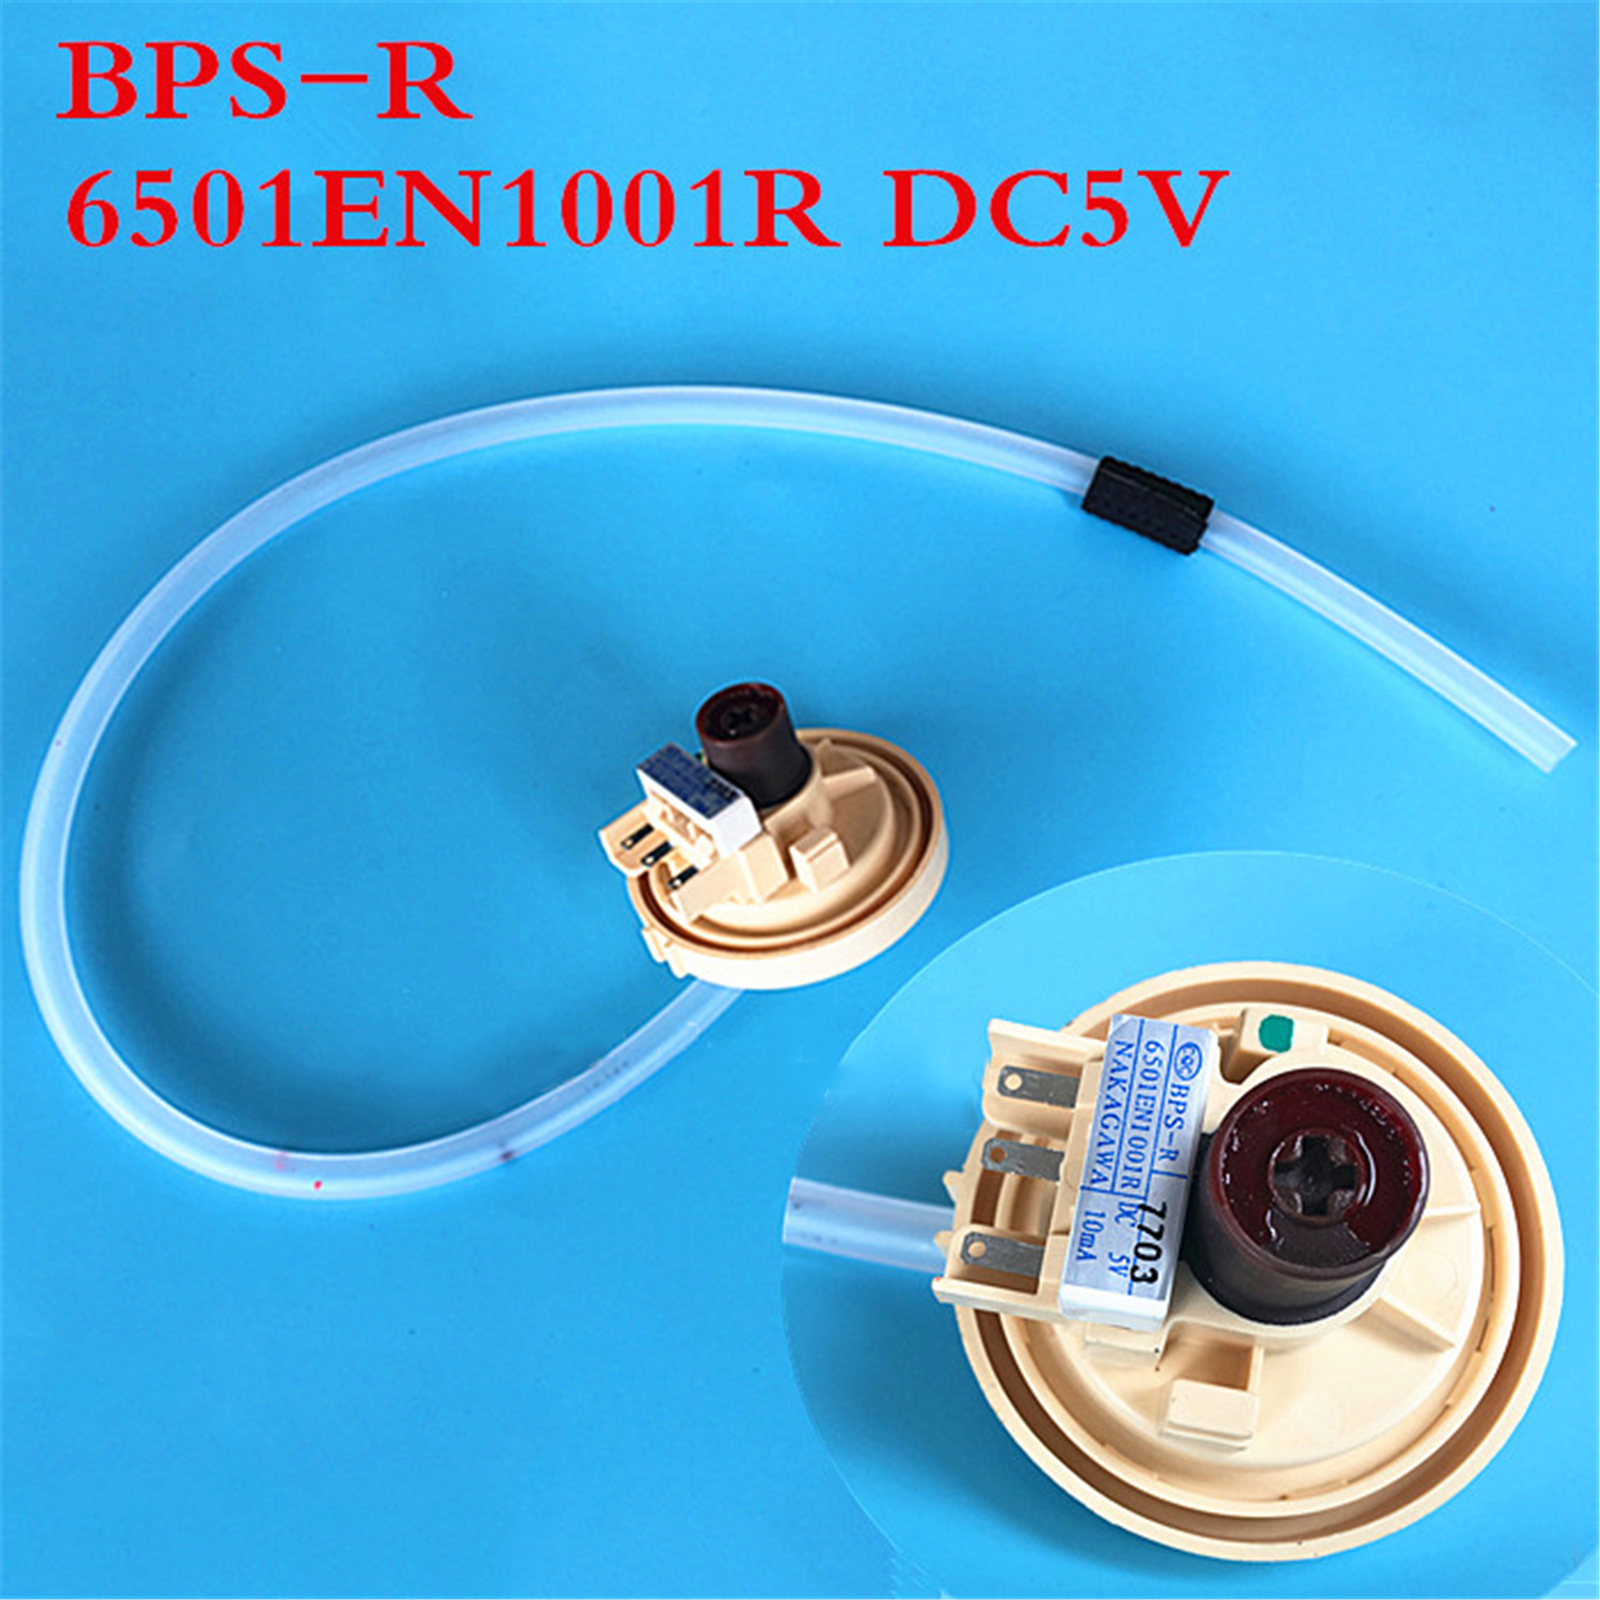 For LG Automatic Washing Machine Water Level Sensor Water Level Pressure Switch BPS-R 6501EA1001R Controller Switch